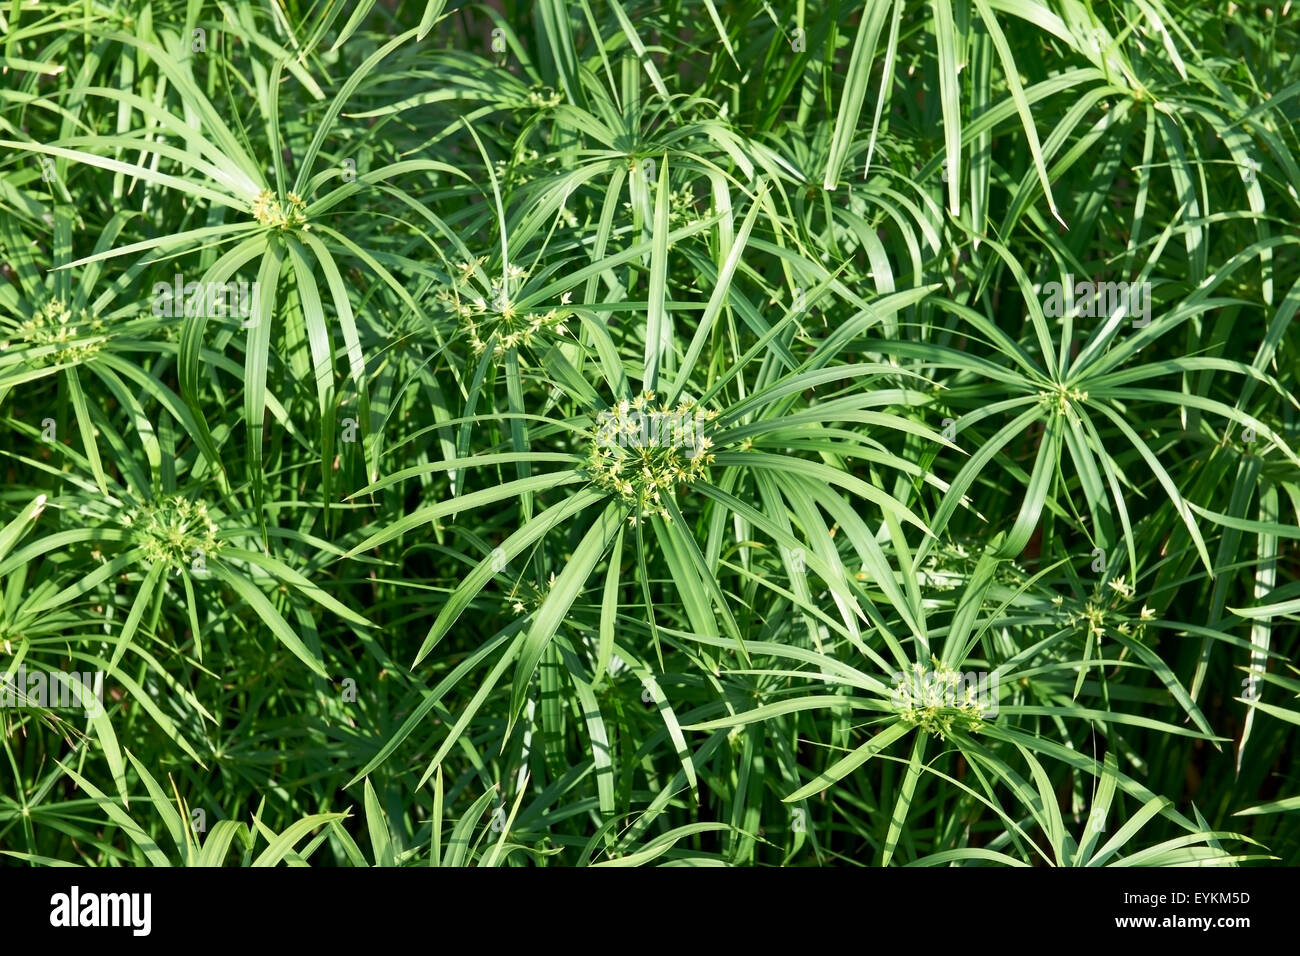 papyrus papyrus shrubs sour grass plant cyperus papyrus stock photo royalty free image. Black Bedroom Furniture Sets. Home Design Ideas